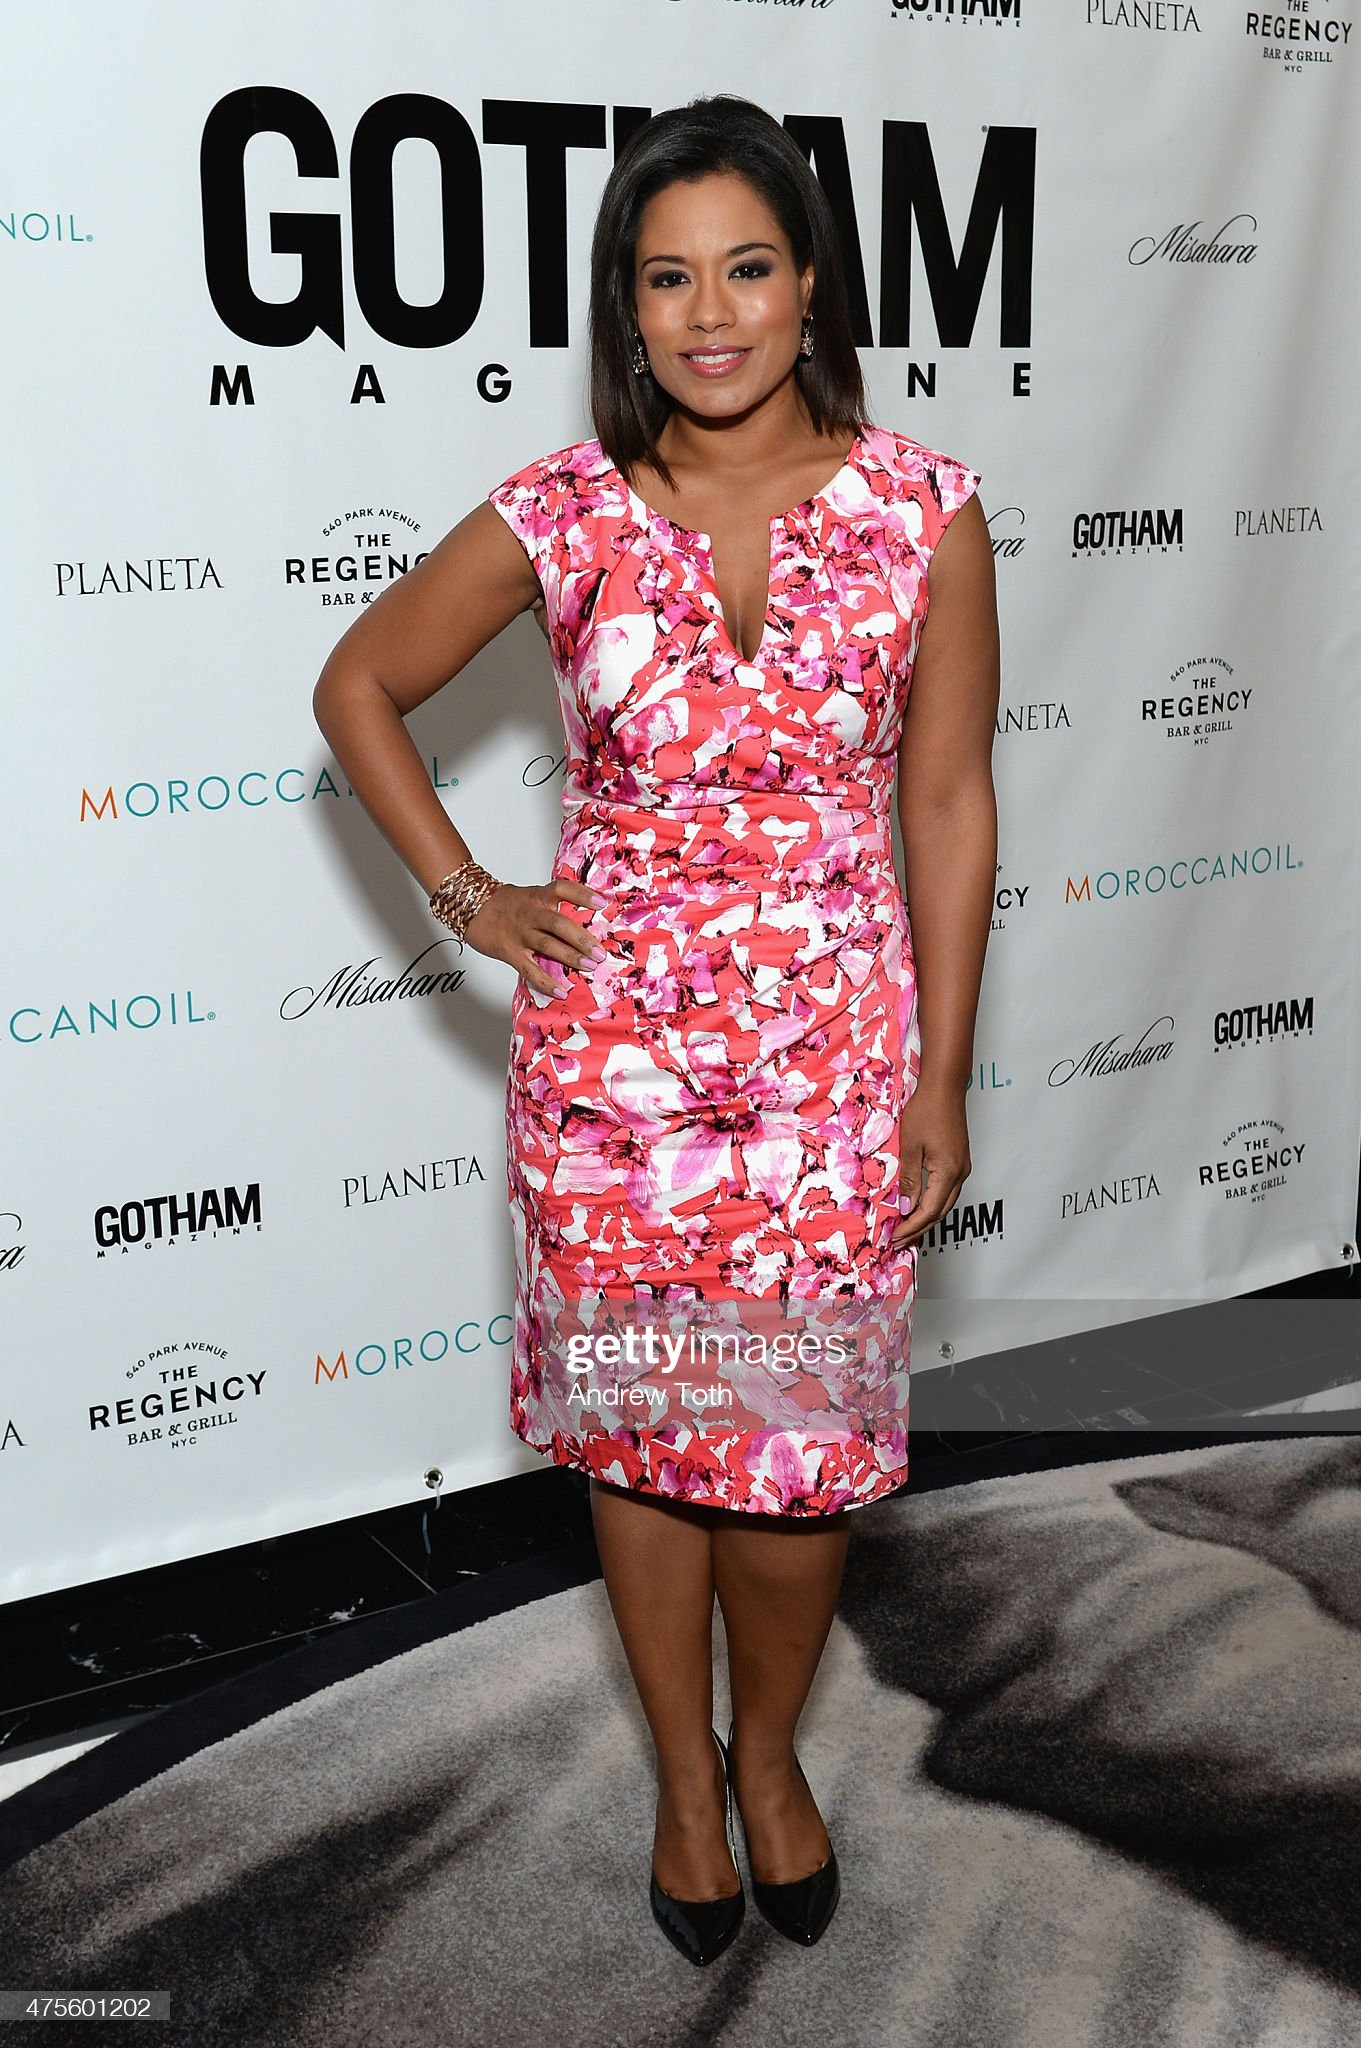 ¿Cuánto mide Shiba Russell? - Altura - Real height Shiba-russell-attends-gotham-magazine-celebrates-new-yorks-most-on-picture-id475601202?s=2048x2048